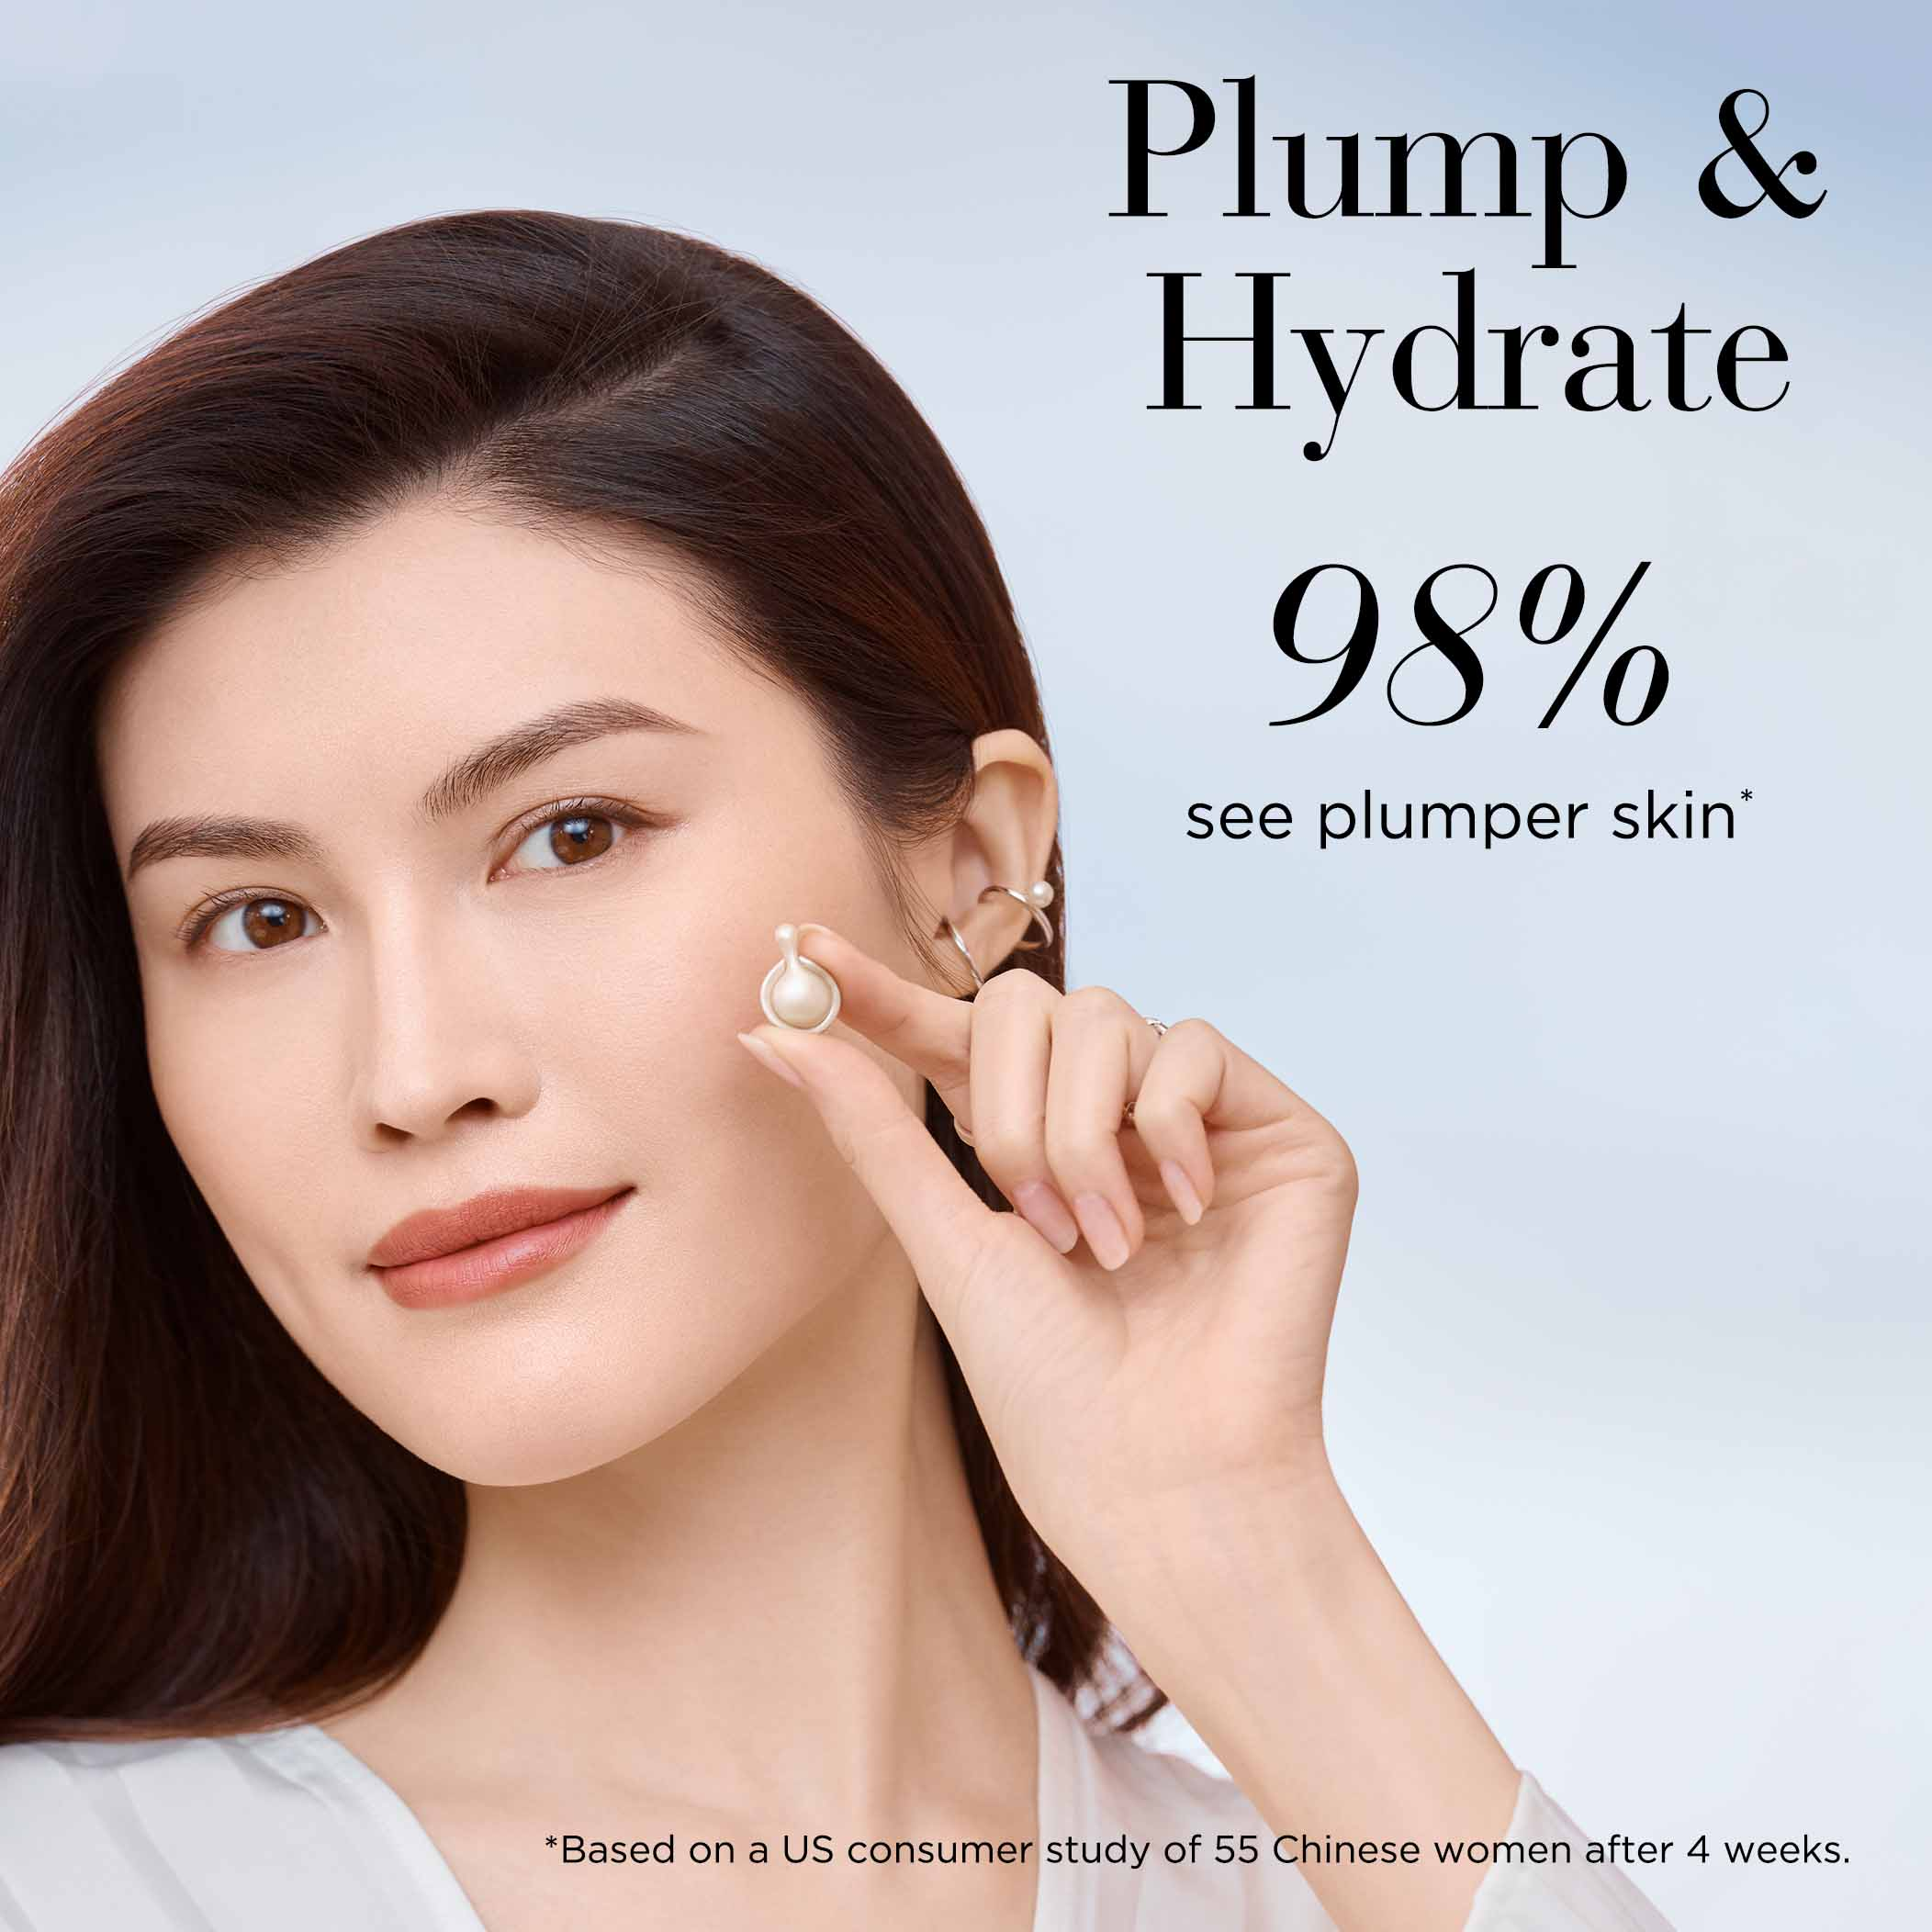 Plump and Hydrate 98% see plumper skin based on a US consumer study of 55 Chinese women after 4 weeks